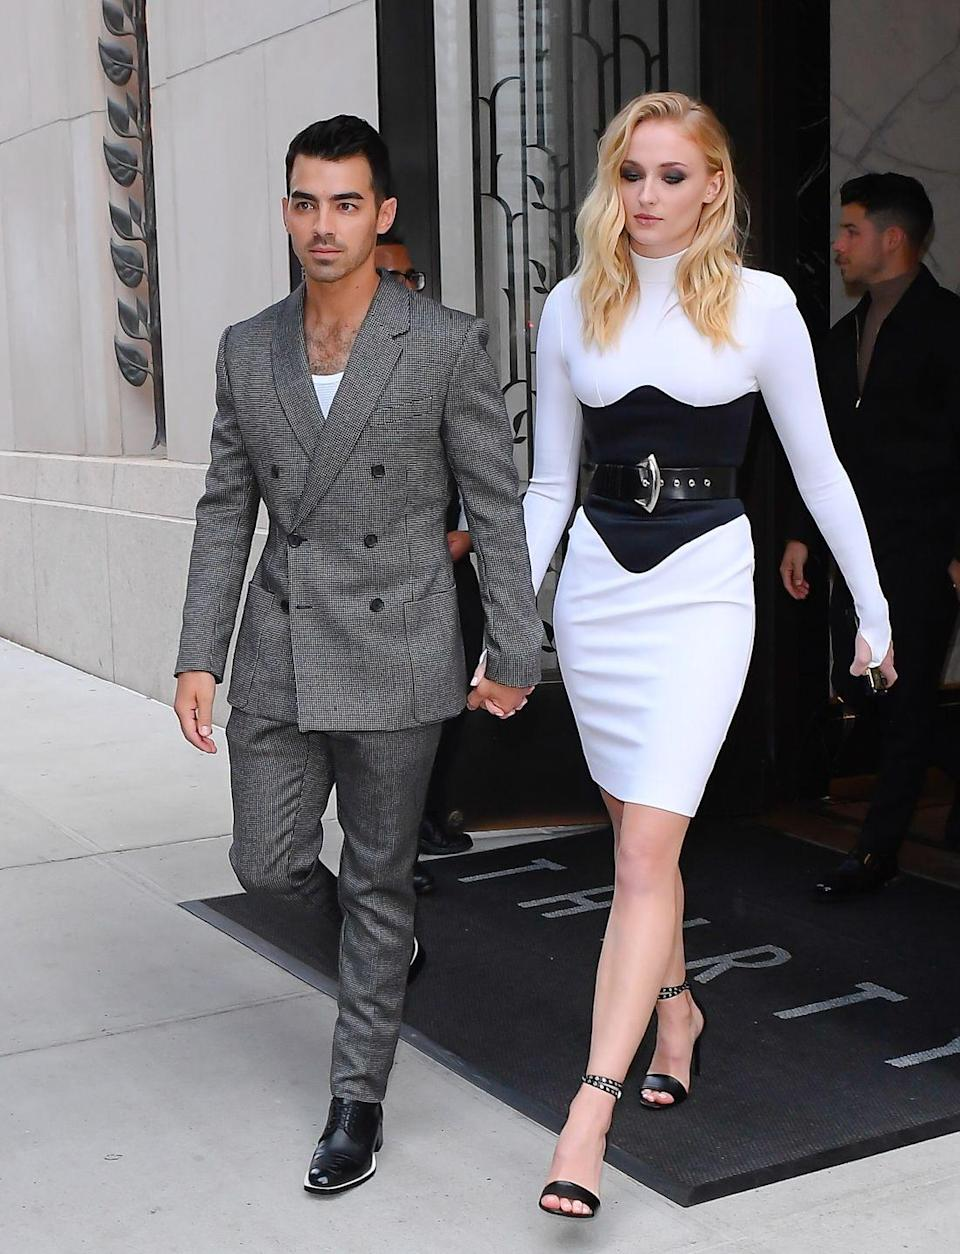 <p>Though they skipped the red carpet, Sophie Turner and Joe Jonas still managed to be one of the best dressed couples at the 2019 MTV VMAs. </p><p>Wearing a monochrome, high-neck Louis Vuitton midi dress, Turner supported a suited and booted Joe Jonas, who won the award for best pop video with the Jonas Brothers. Go Joe!</p>